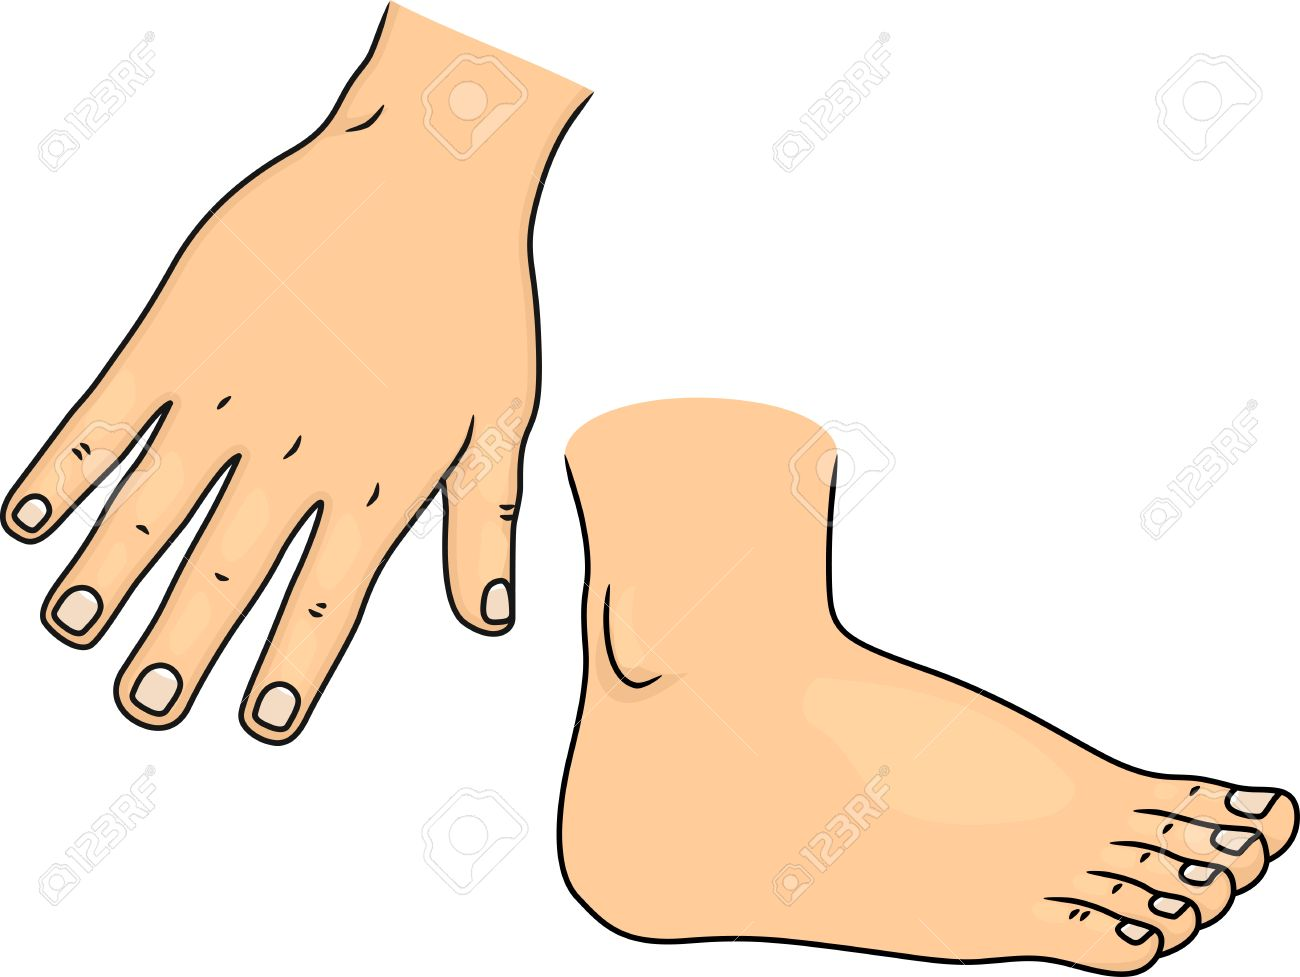 Illustration Of Hand And Foot Body Parts Stock Photo Picture And